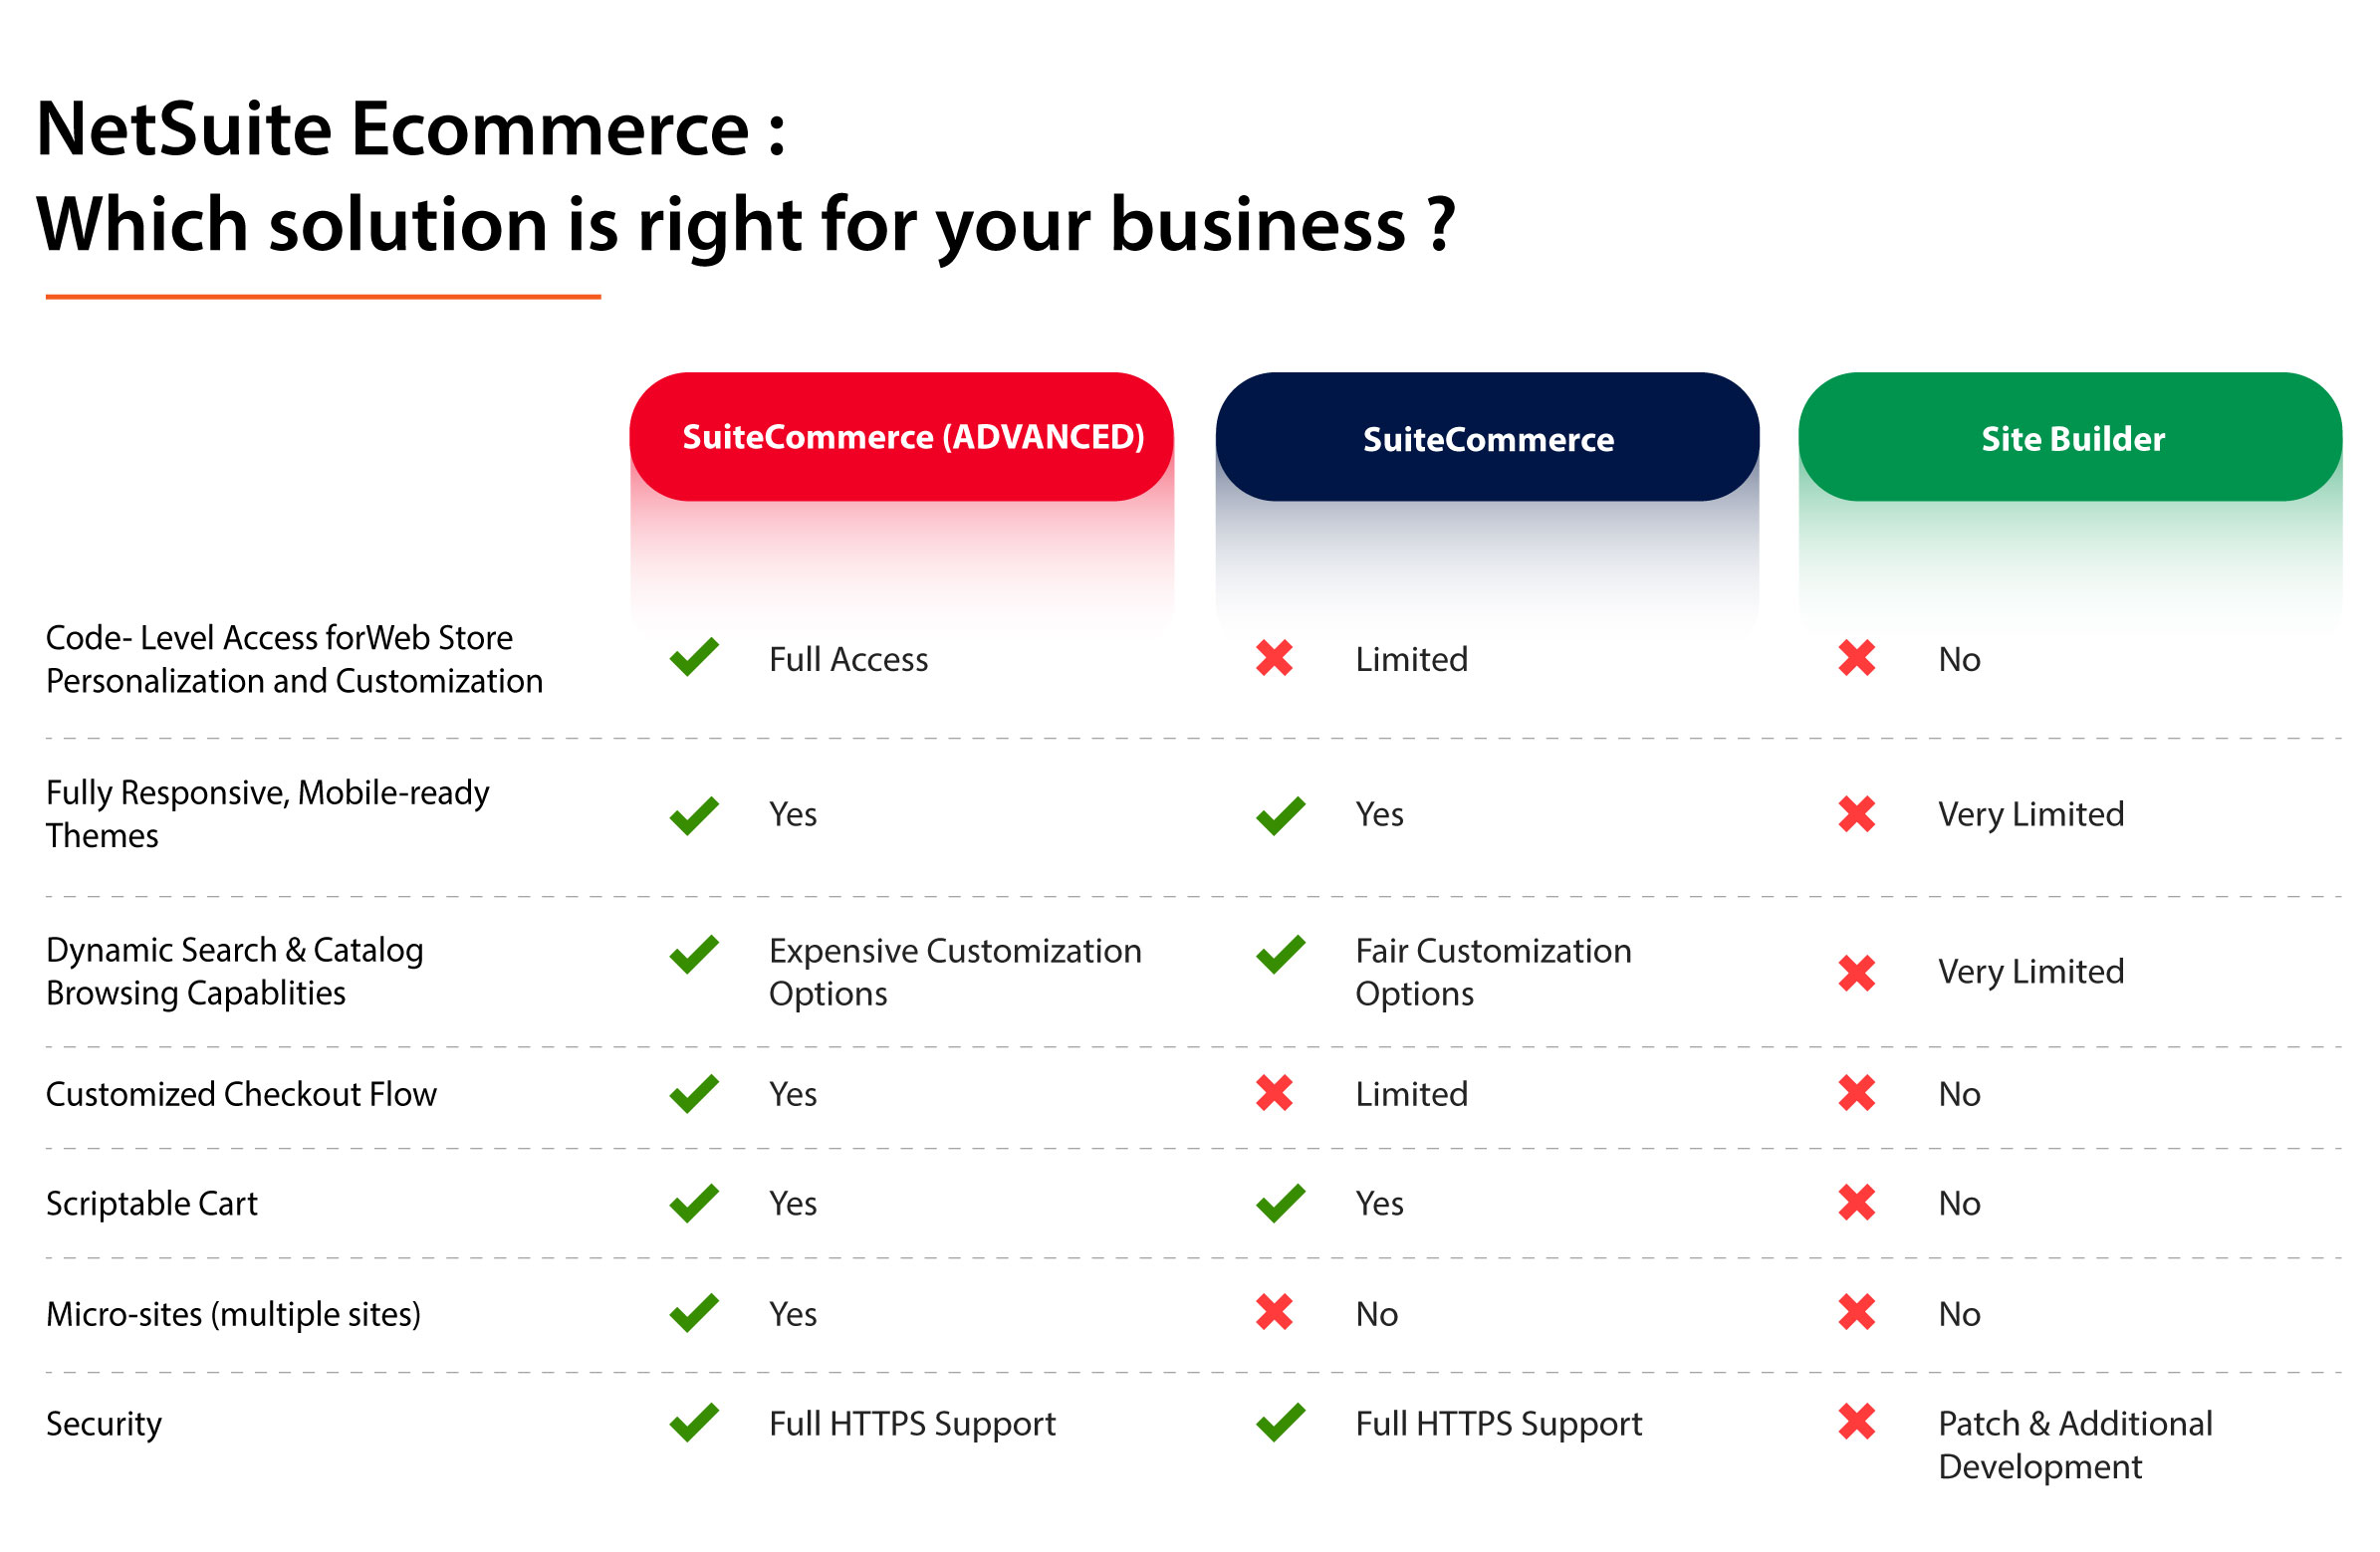 Comparison of Netsuite Ecommerce Options